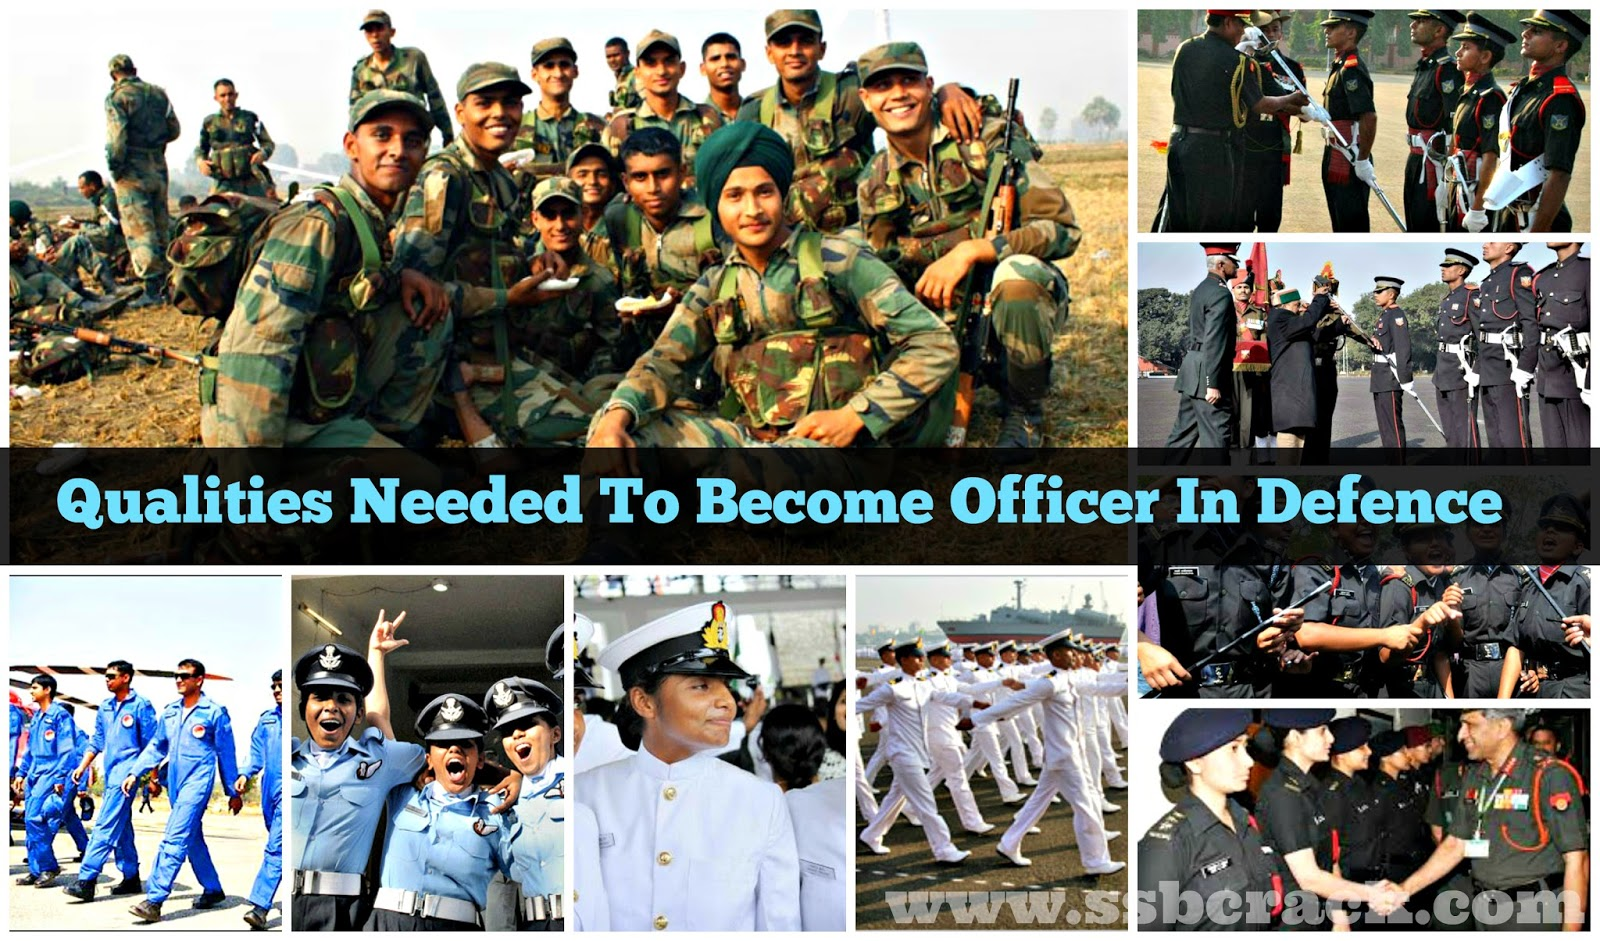 Qualities Needed To Become Officer In Defence